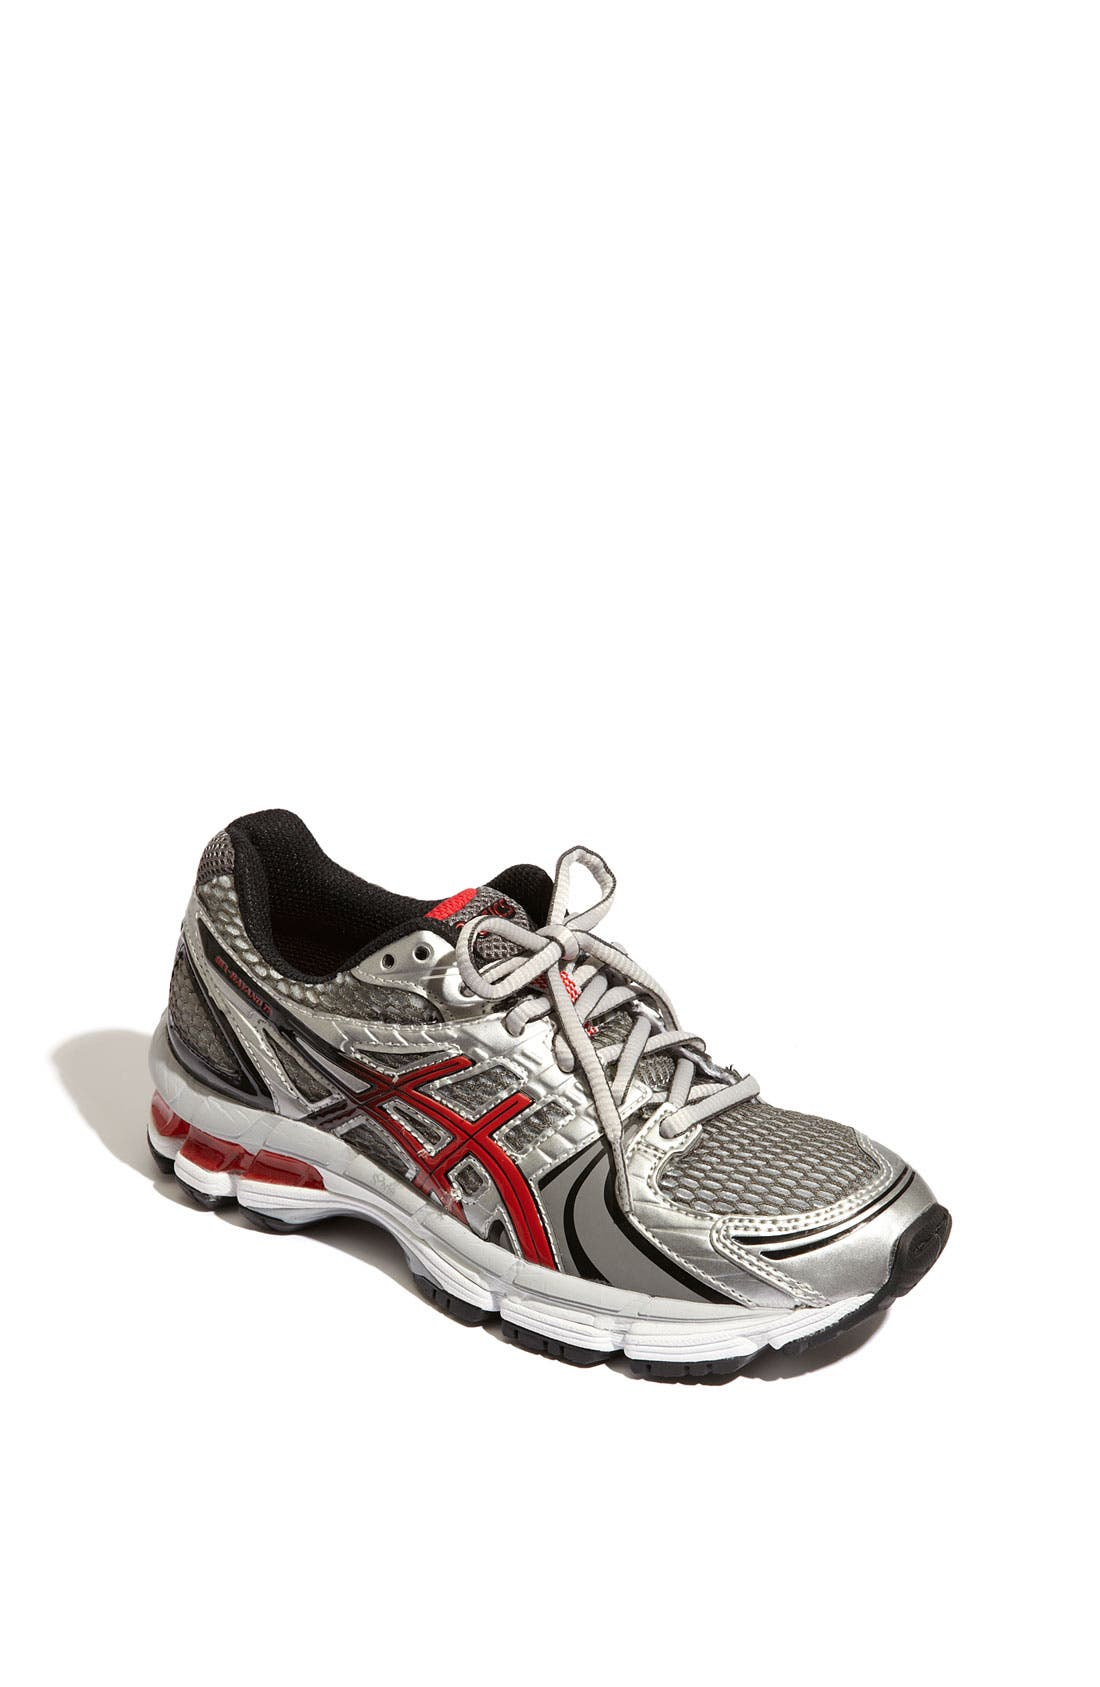 Main Image - ASICS® 'GEL-Kayano® 18 GS' Running Shoe (Big Kid)